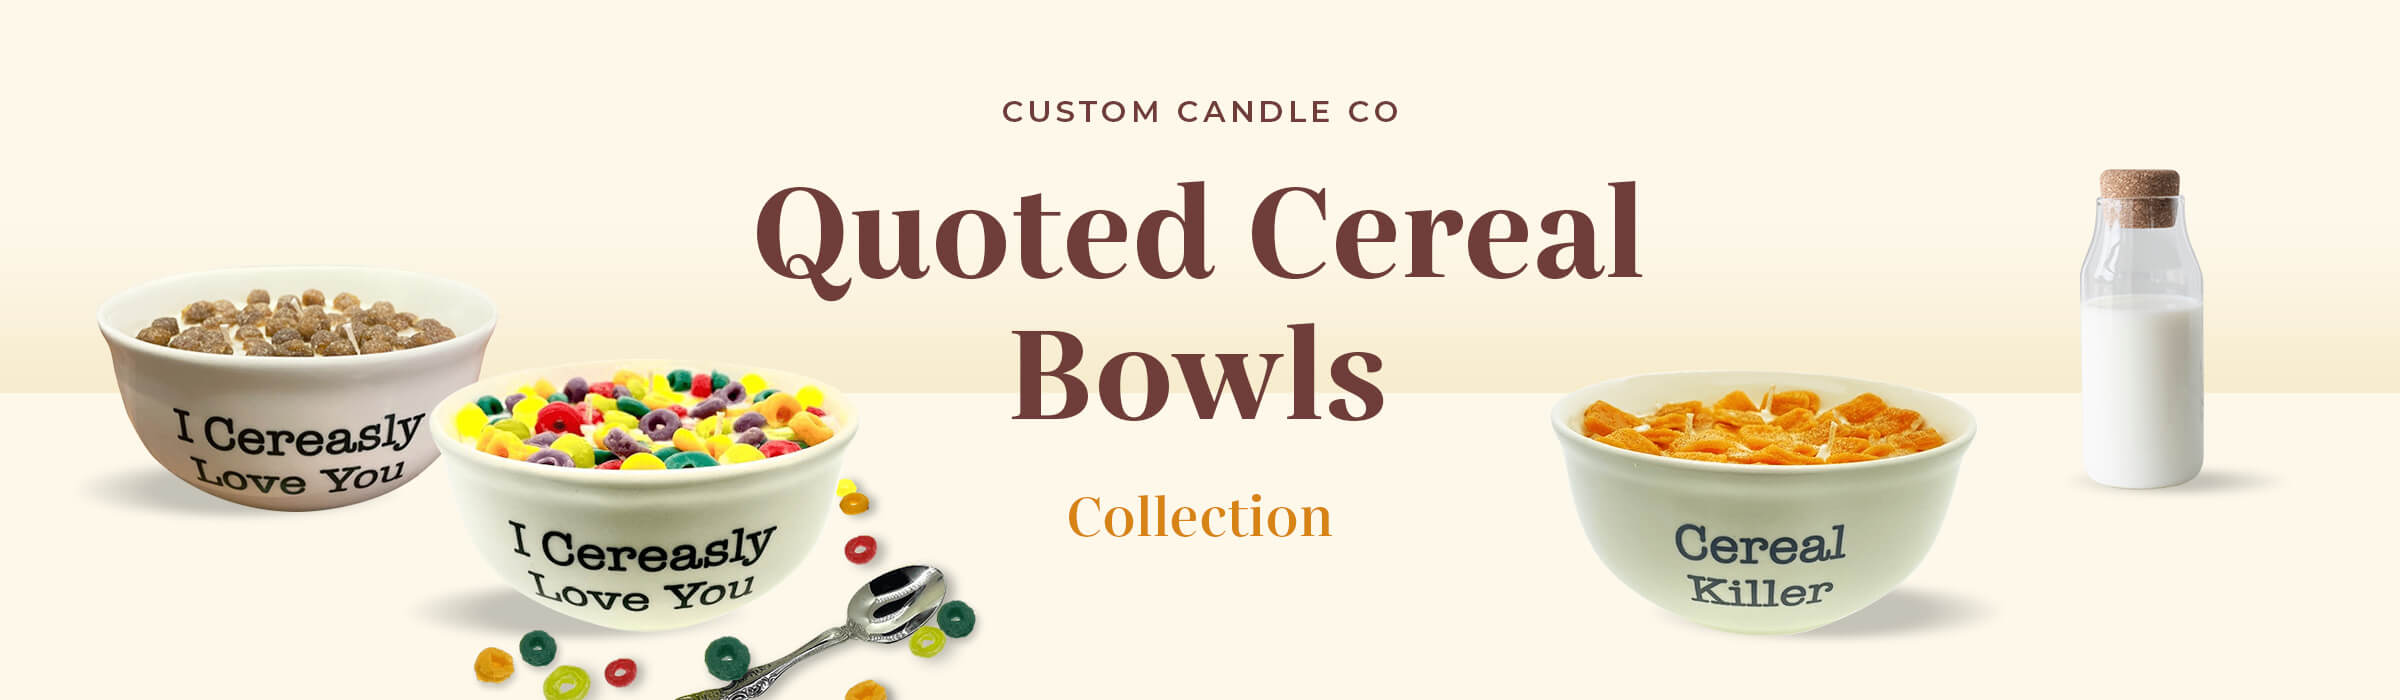 QUOTED CEREAL BOWLS